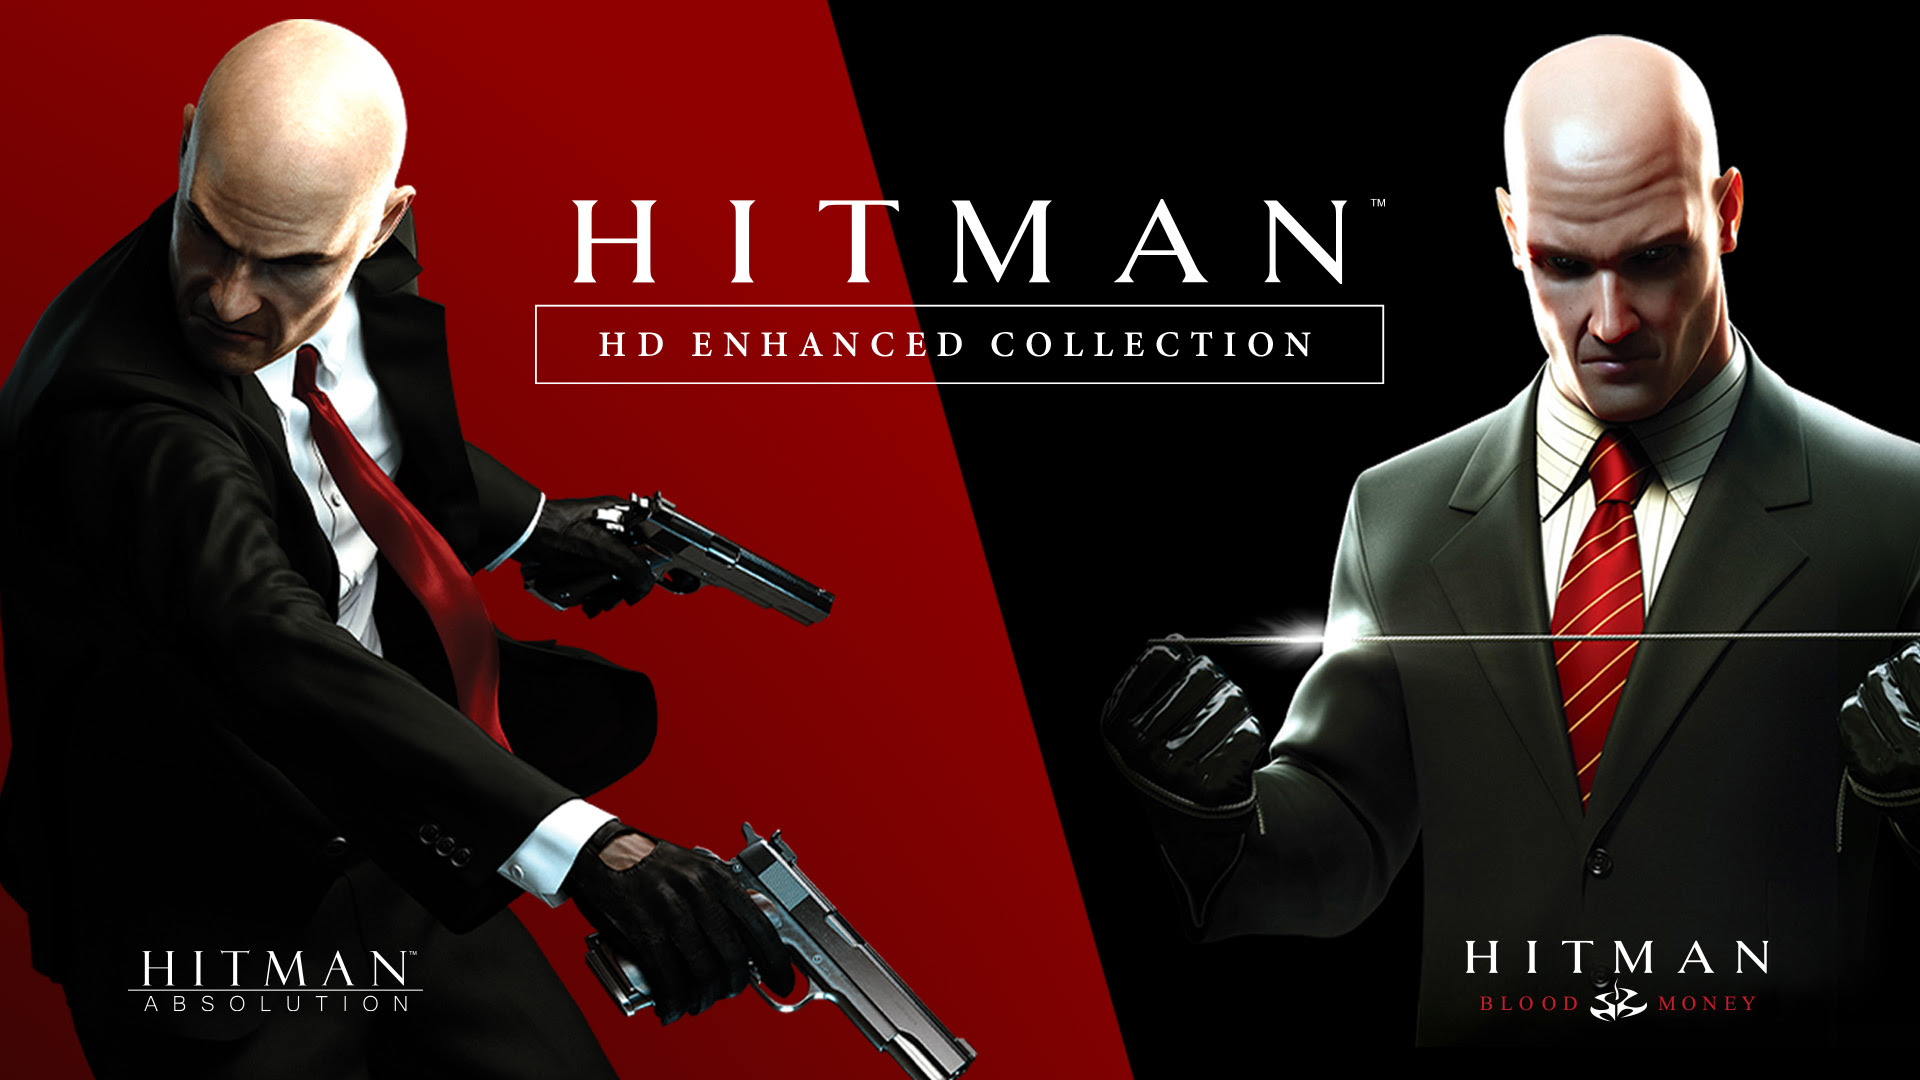 Hitman: annunciata la data d'uscita dall'HD Enhanced Collection thumbnail